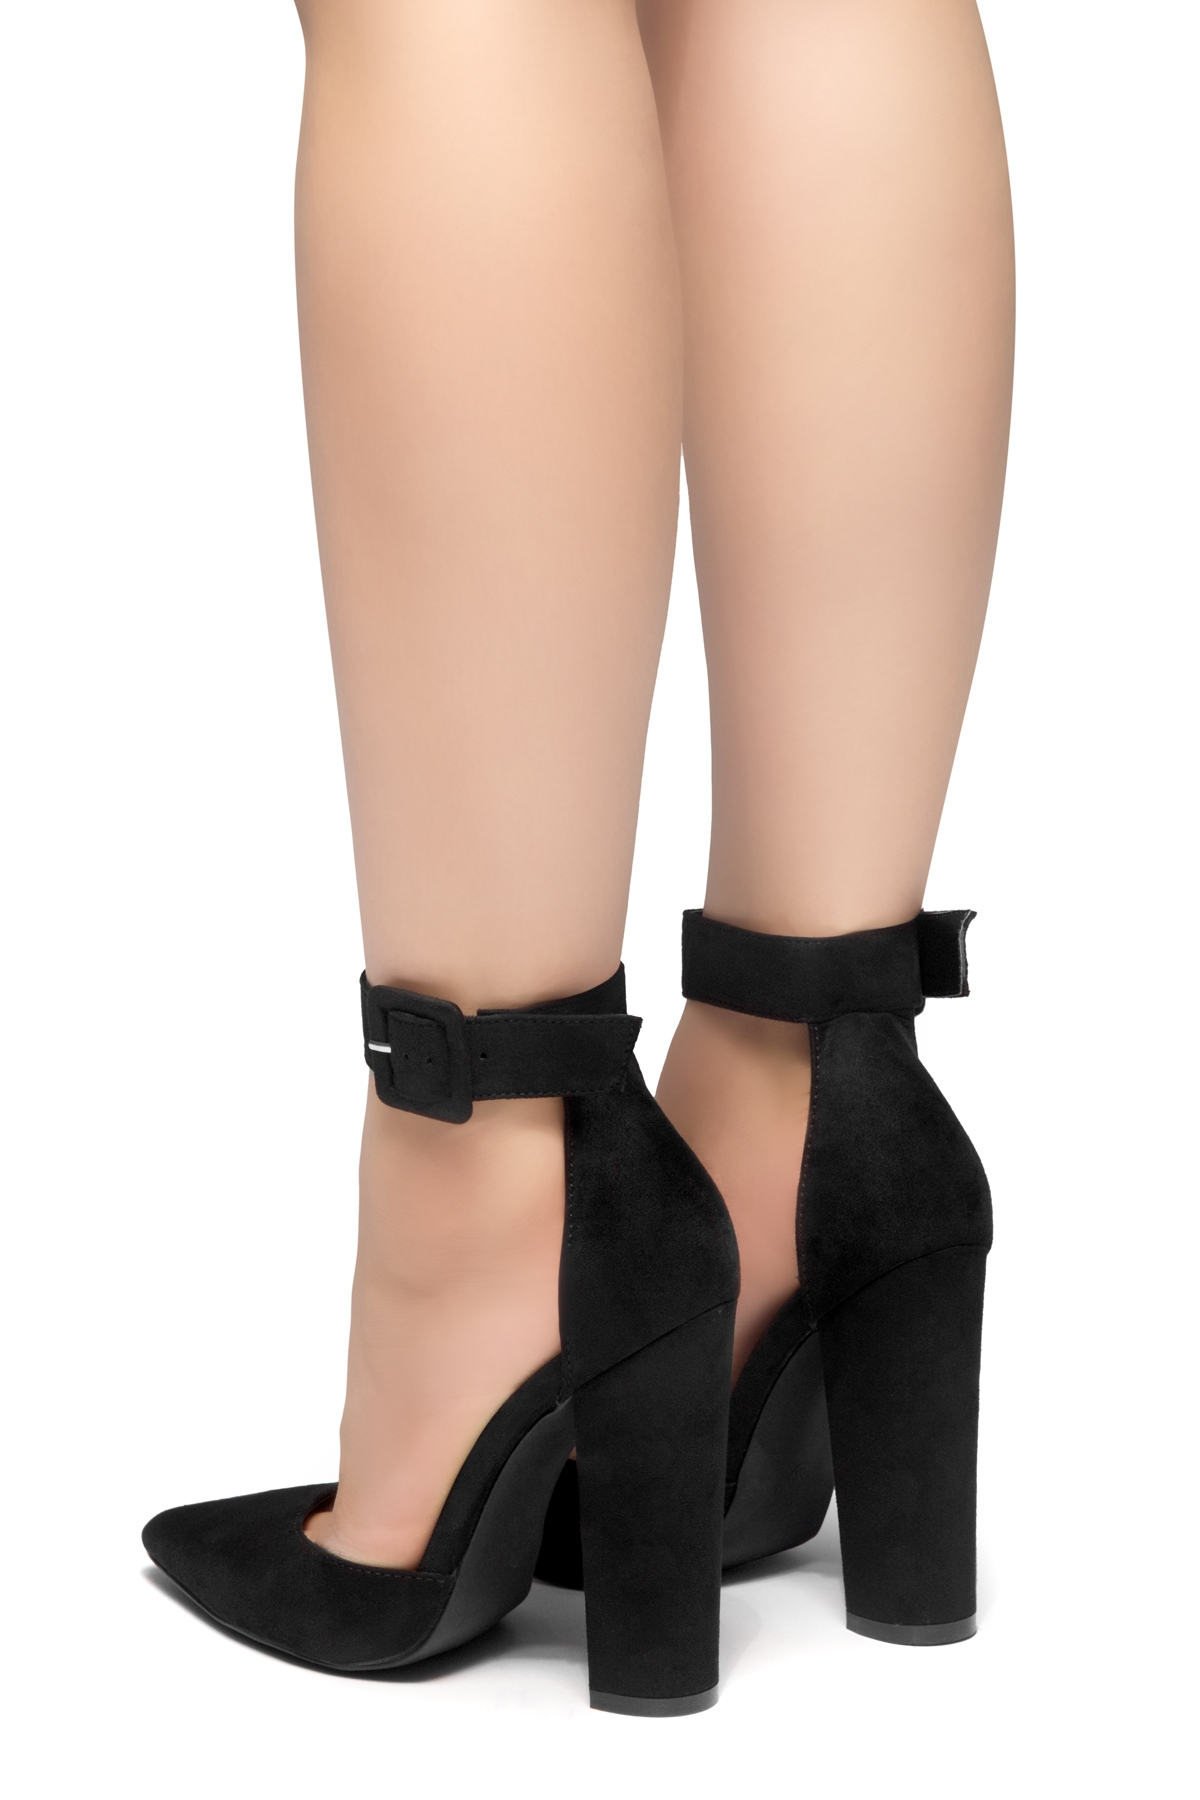 949e1211977 HerStyle PEAK HOUR-Close Pointed Toe Chunky Heel Ankle Strap Sandals (Black)